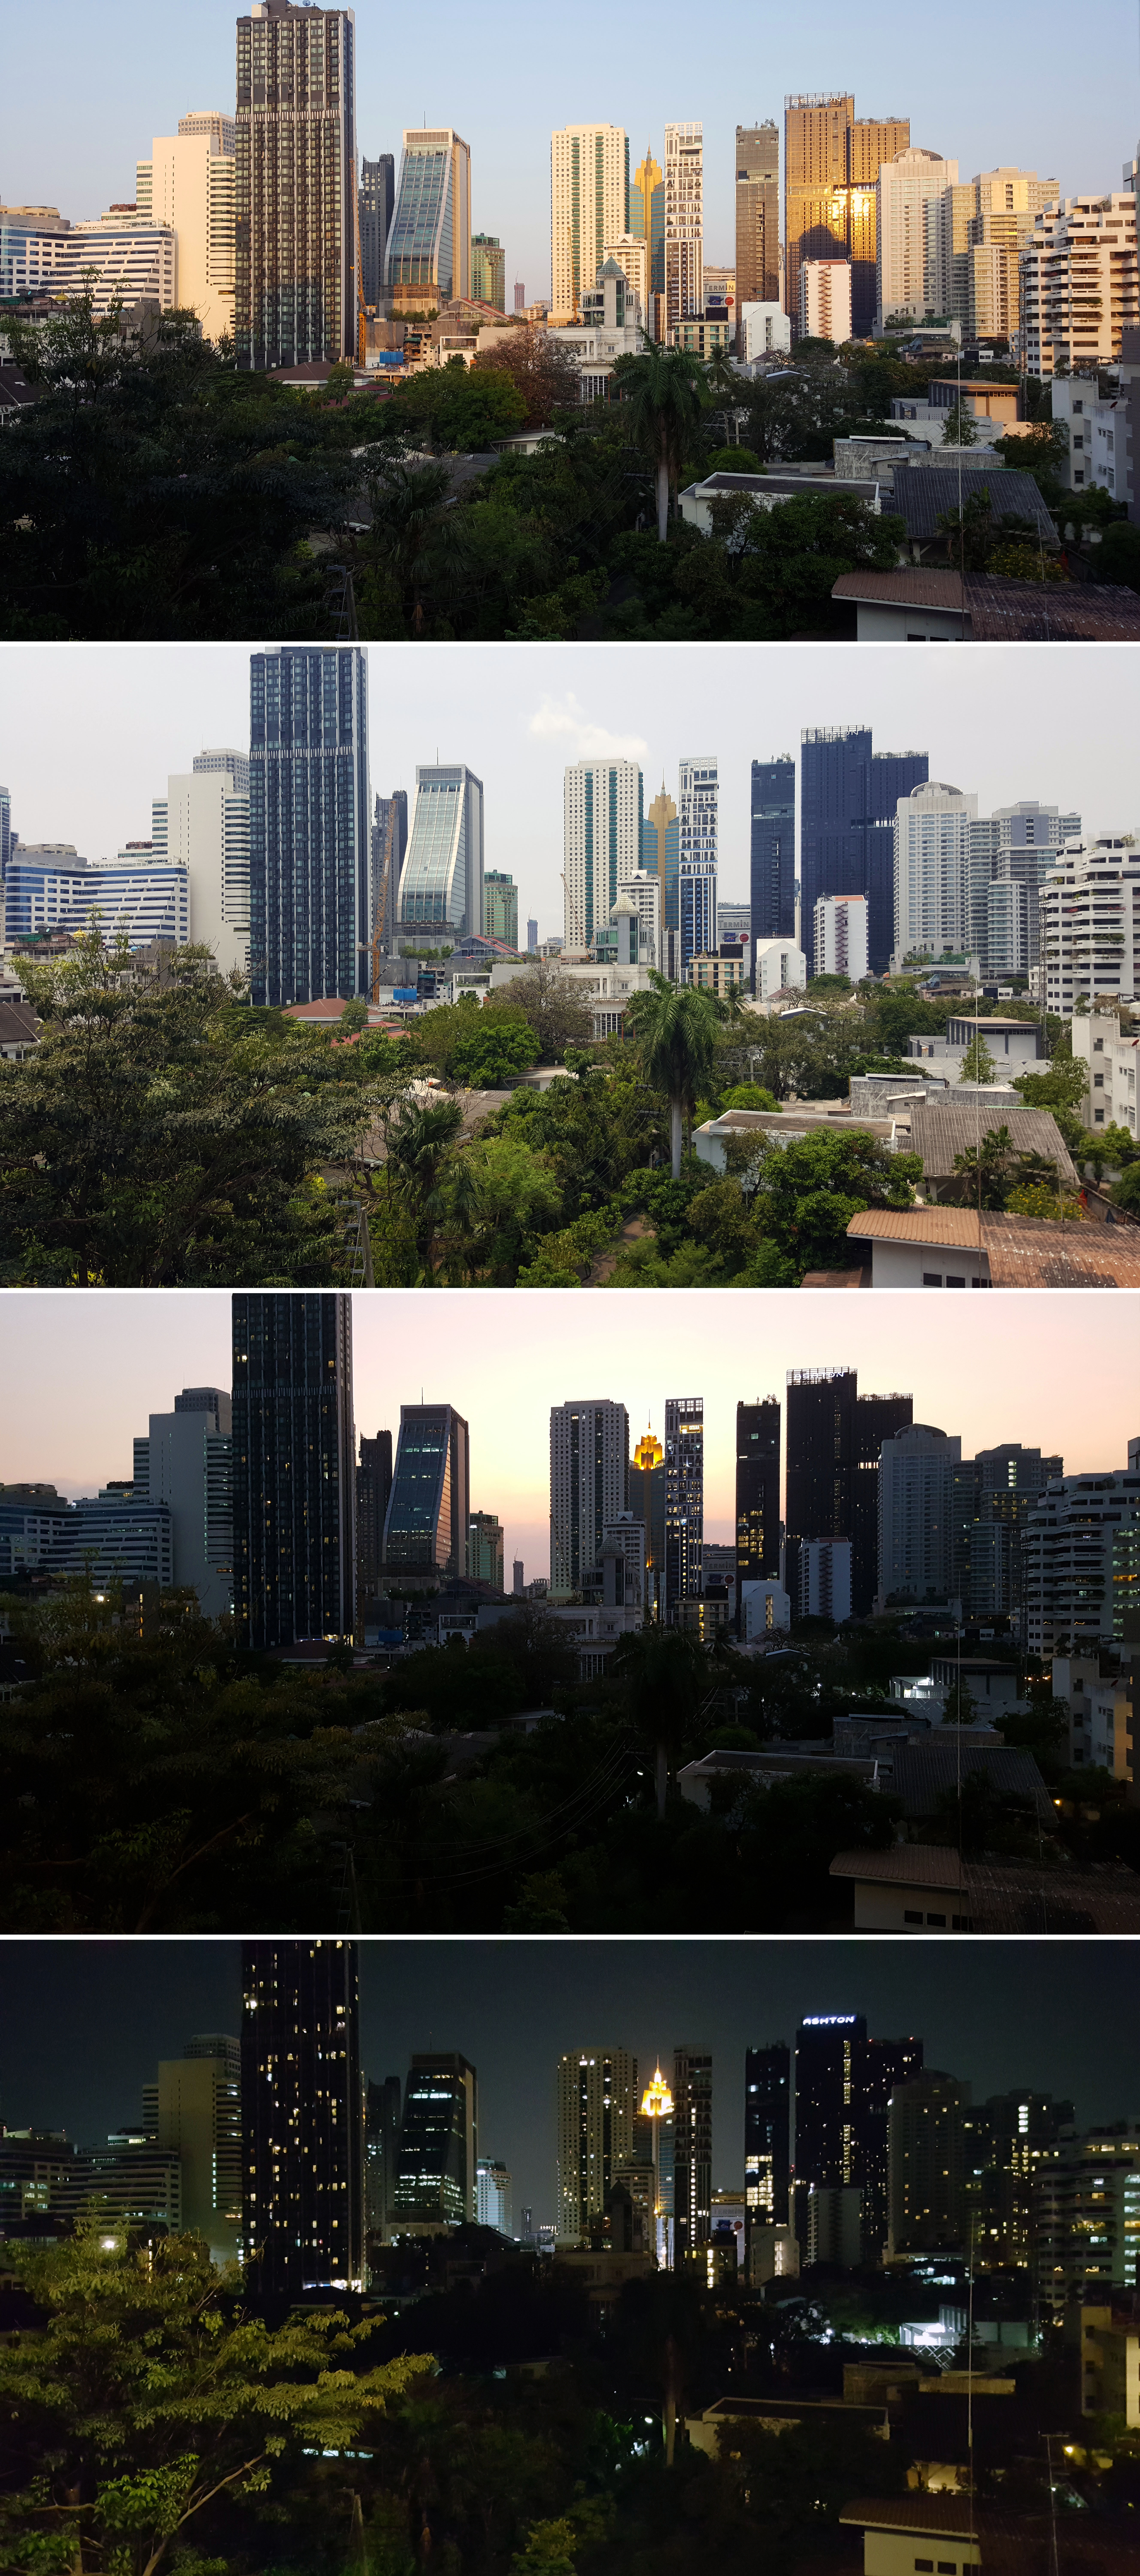 The skyscrapers of Sukhumvit at day and night